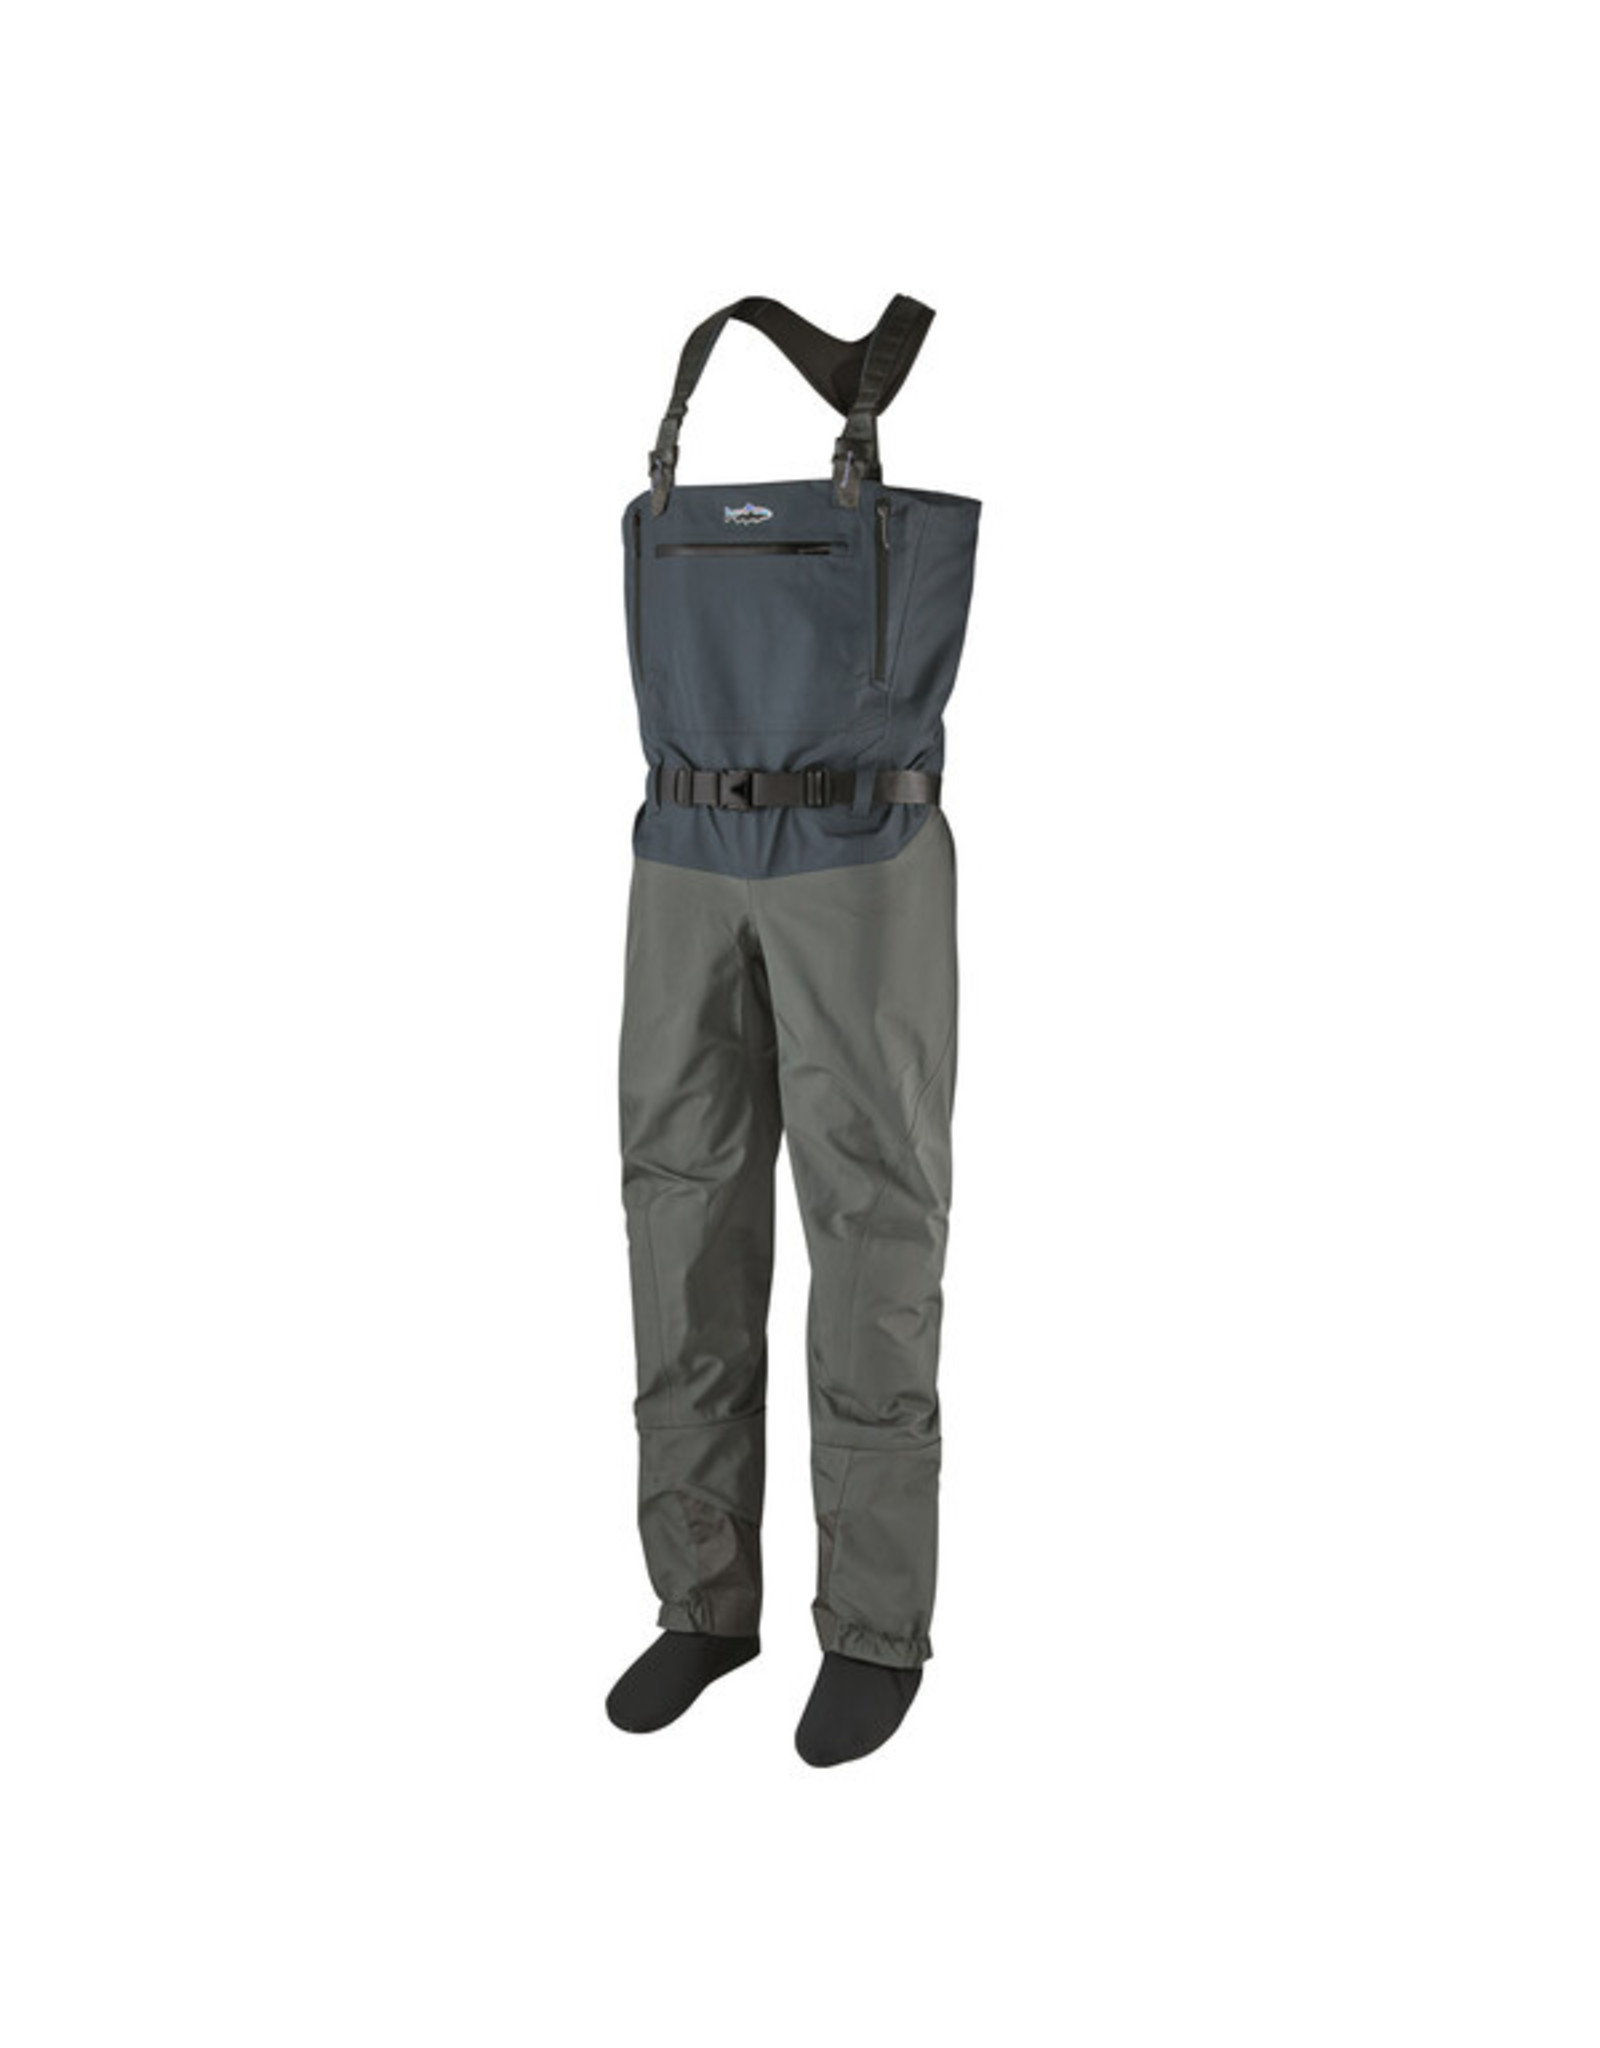 Patagonia Patagonia - Men's Swiftcurrent Expedition Waders